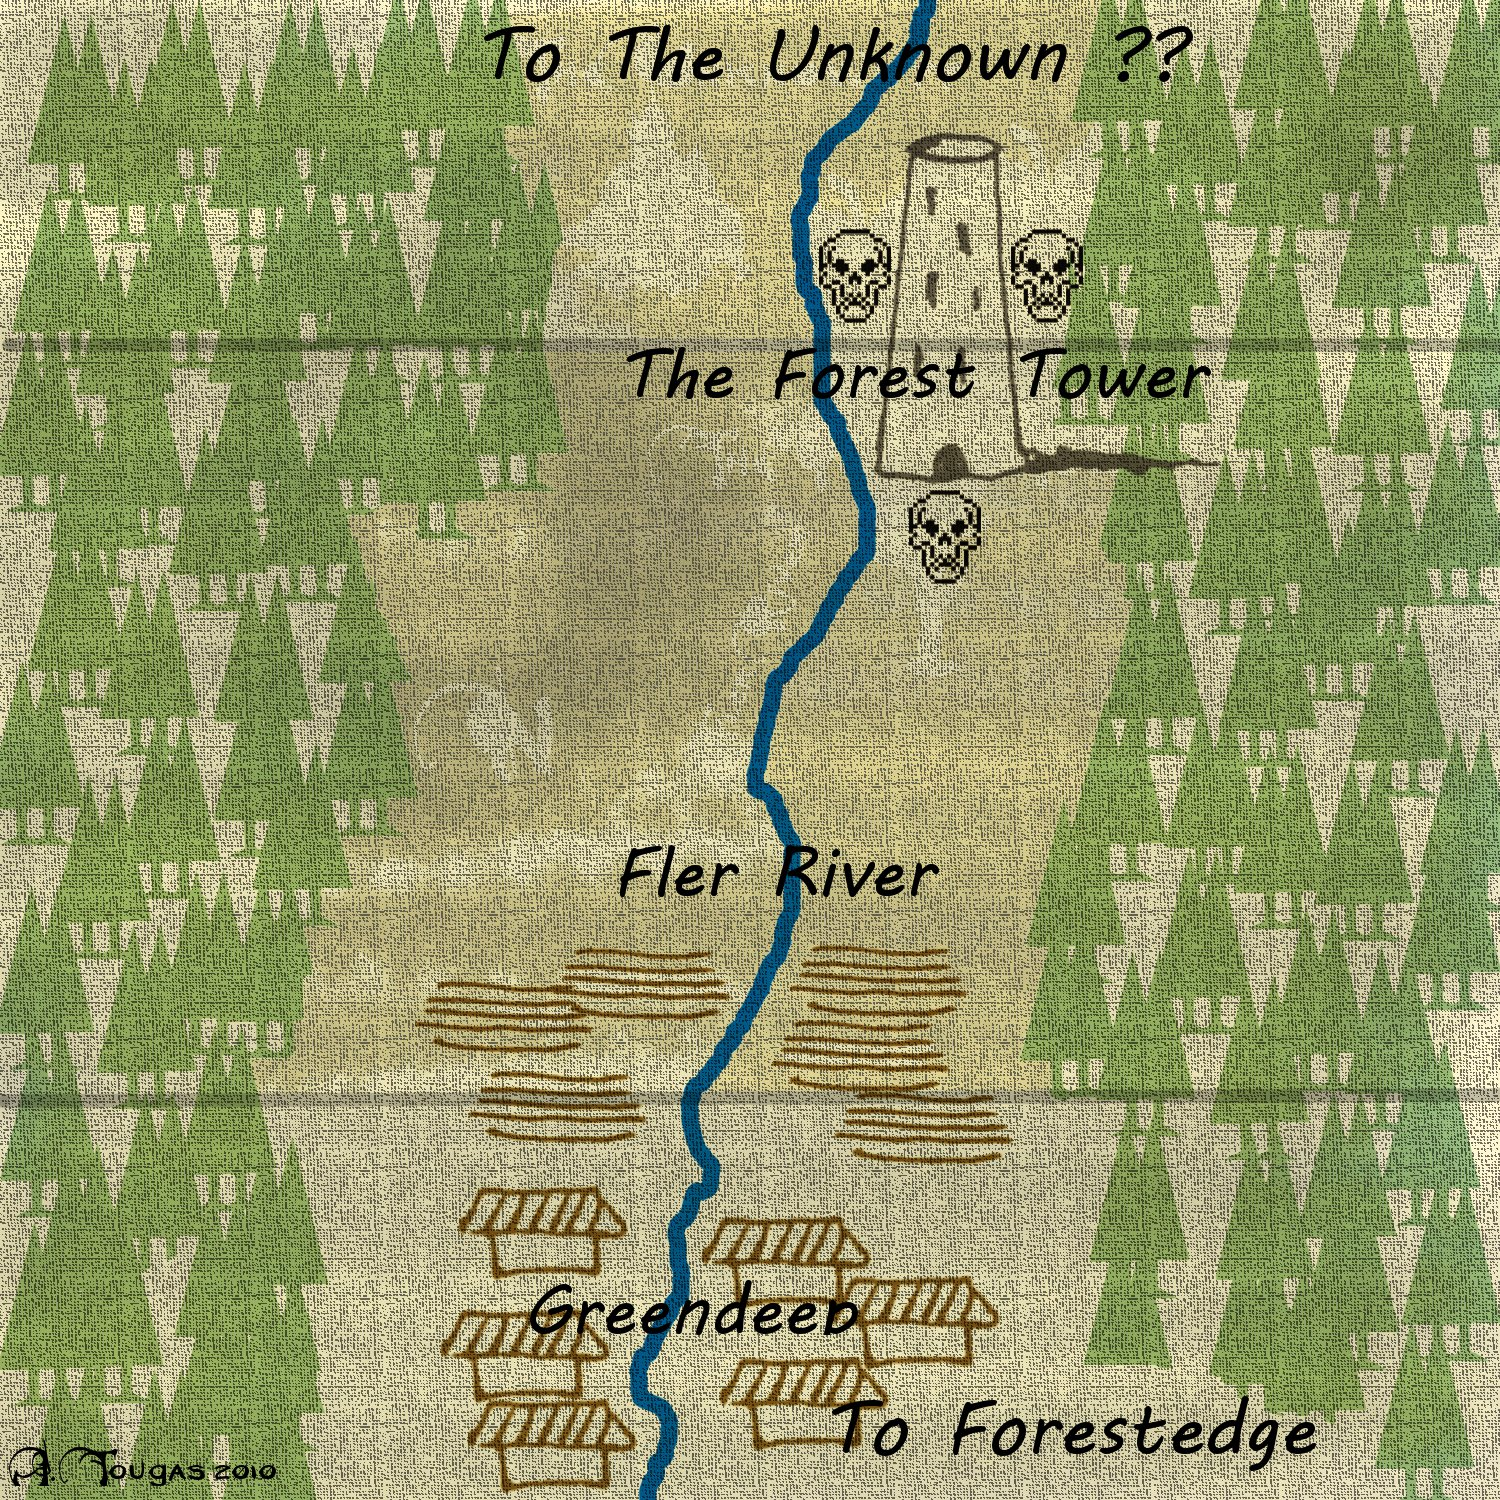 blogs/jtougas/attachments/59947-map-just-pretty-picture-forest-tower-rog-nenshen.jpg